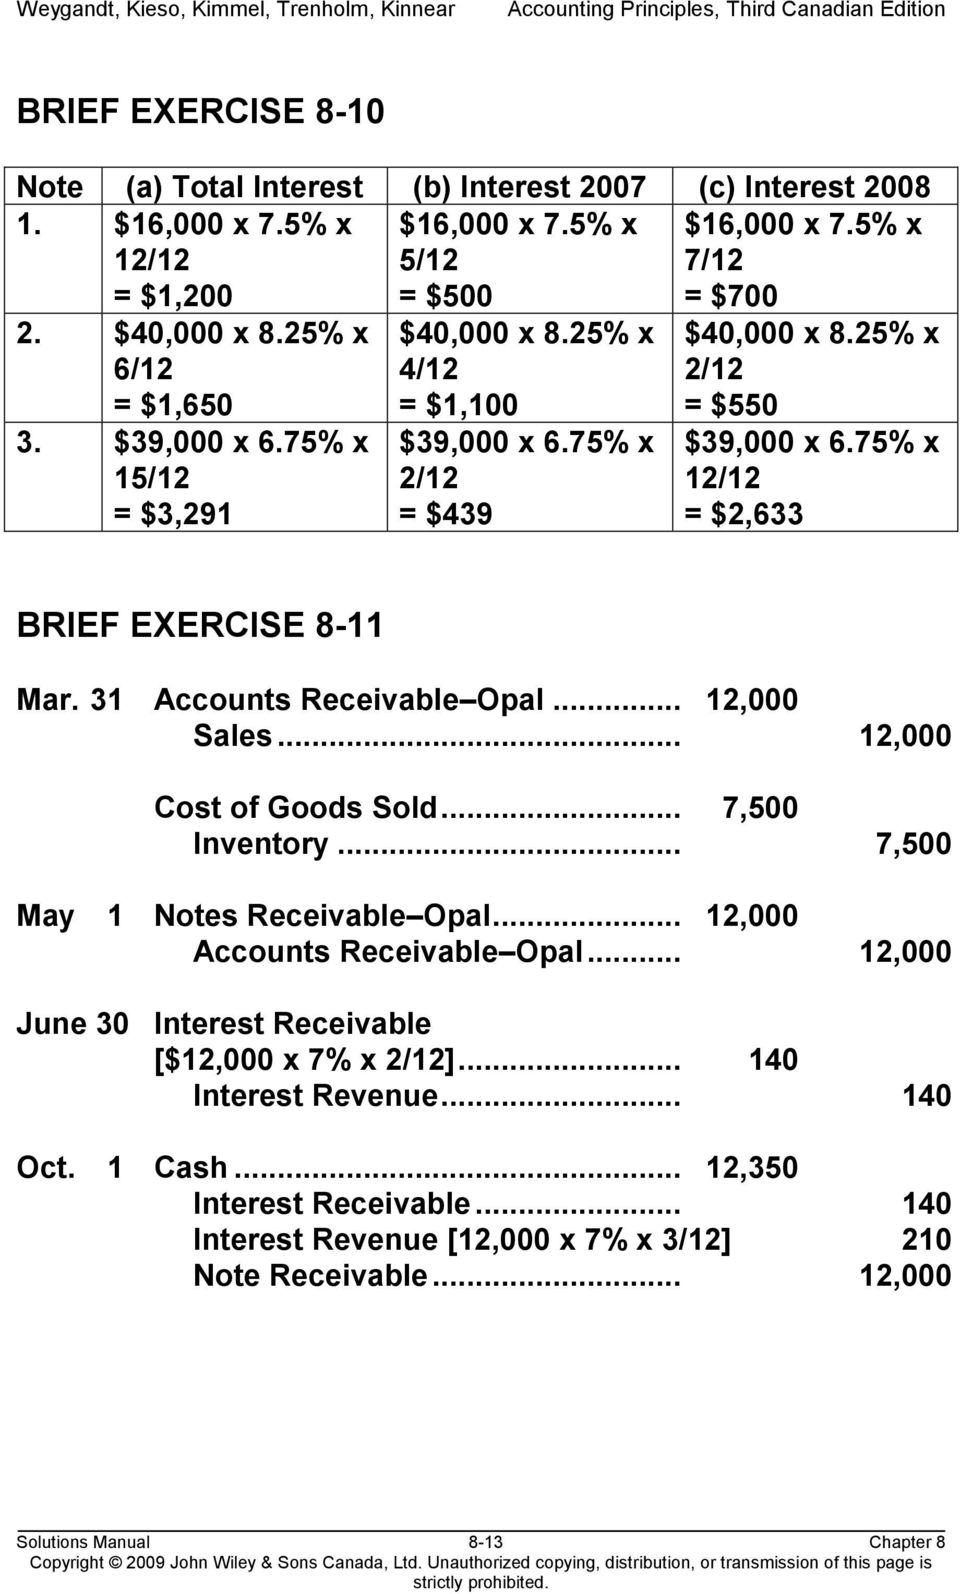 75% x 12/12 = $2,633 BRIEF EXERCISE 8-11 Mar. 31 Accounts Receivable Opal... 12,000 Sales... 12,000 Cost of Goods Sold... 7,500 Inventory... 7,500 May 1 Notes Receivable Opal.